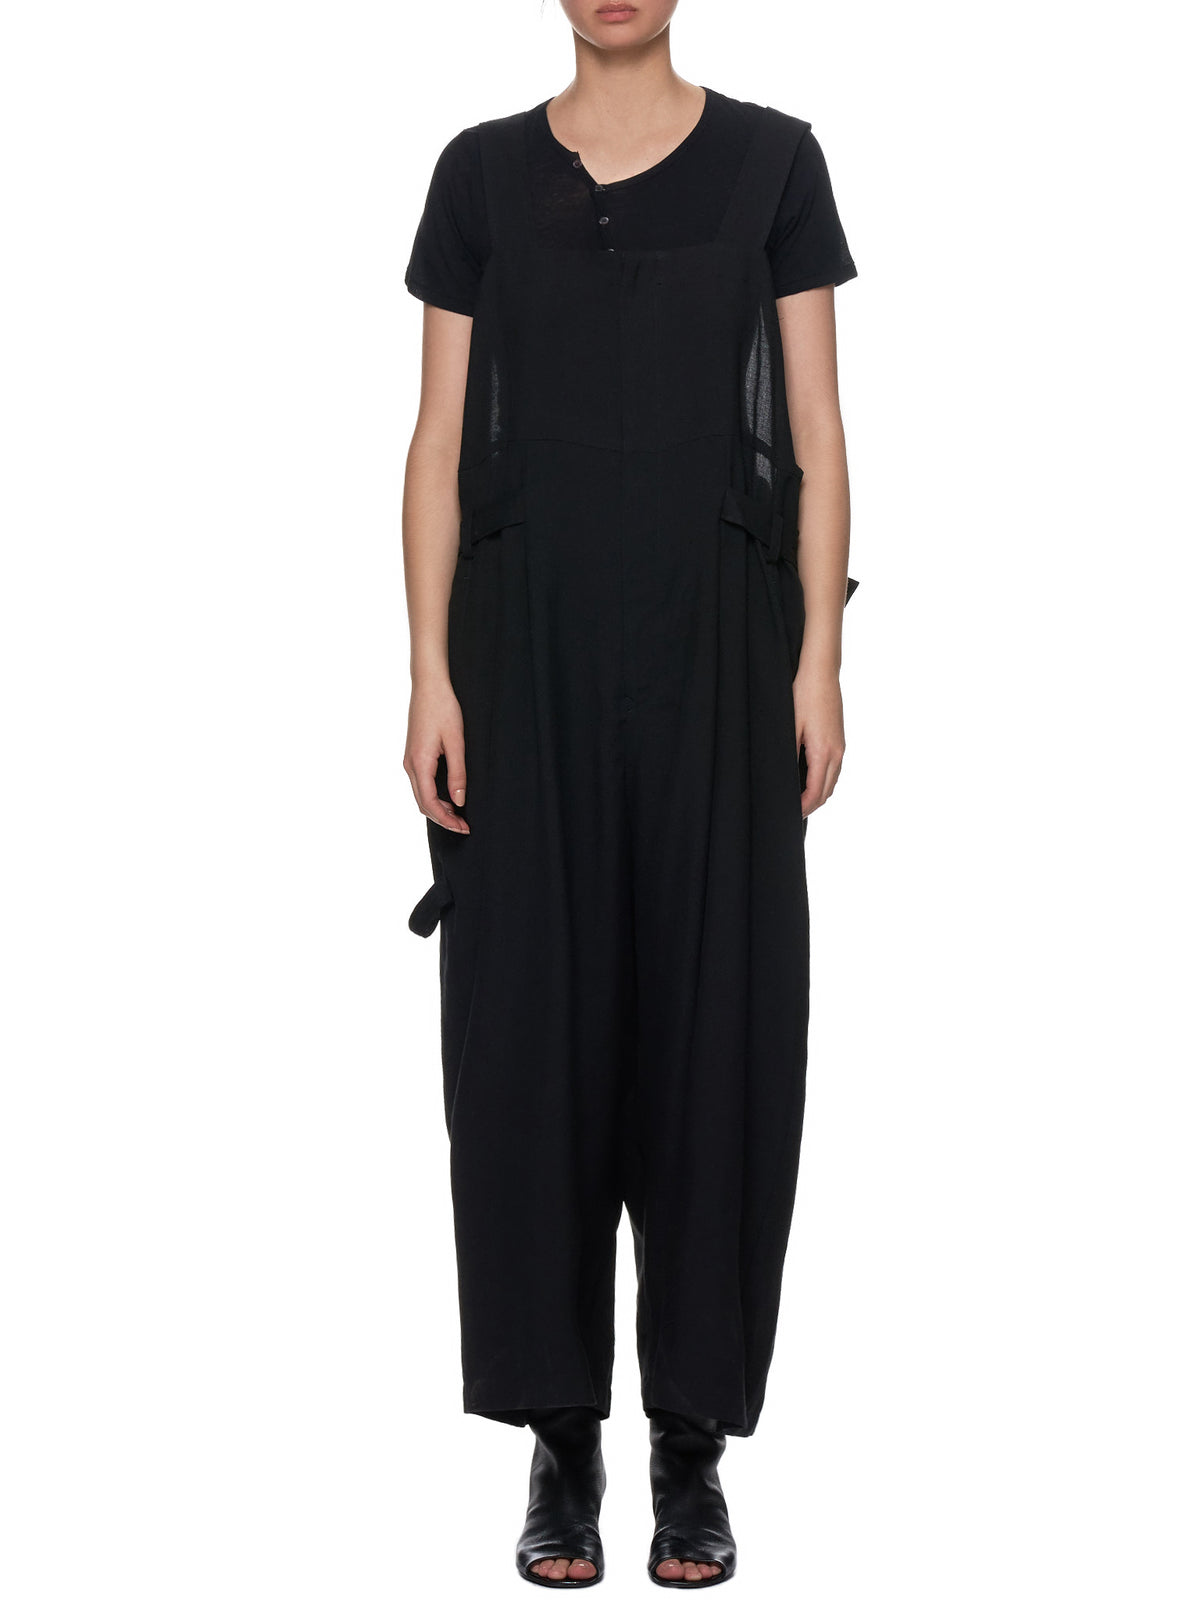 Sleeveless Jumpsuit (YH-D02-203-BLACK)